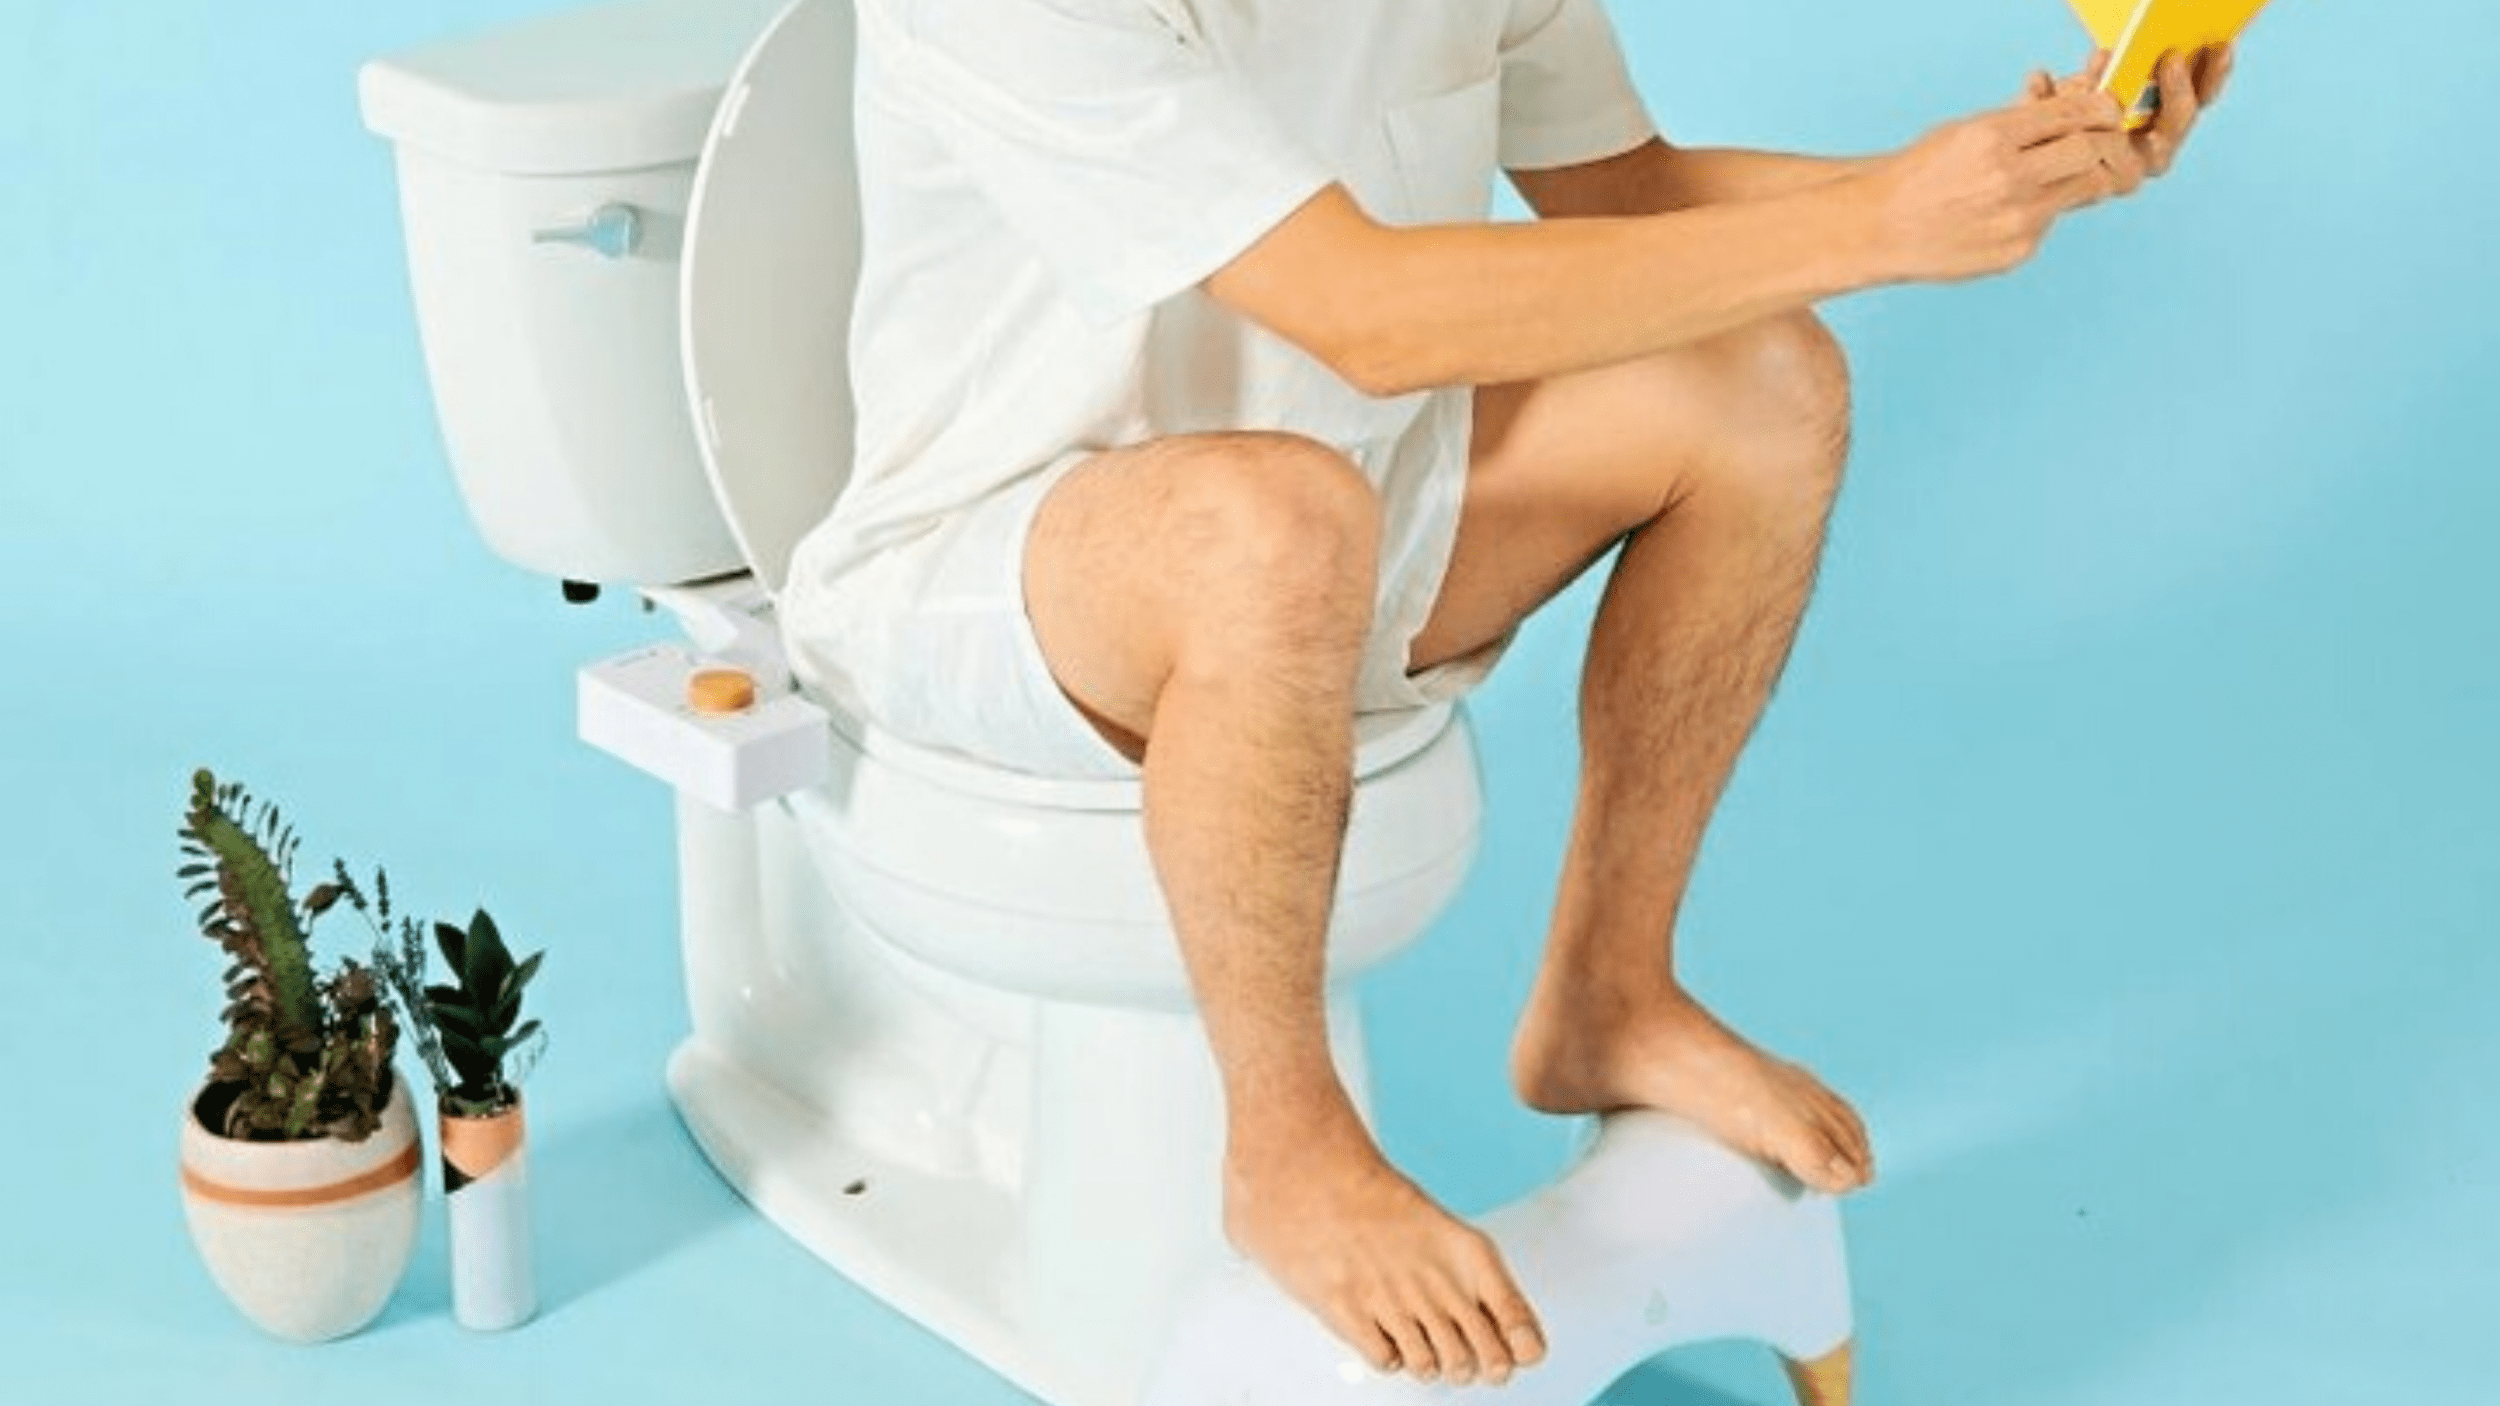 Why Bidets Are Better For Your Butt And How To Use A Bidet Seat